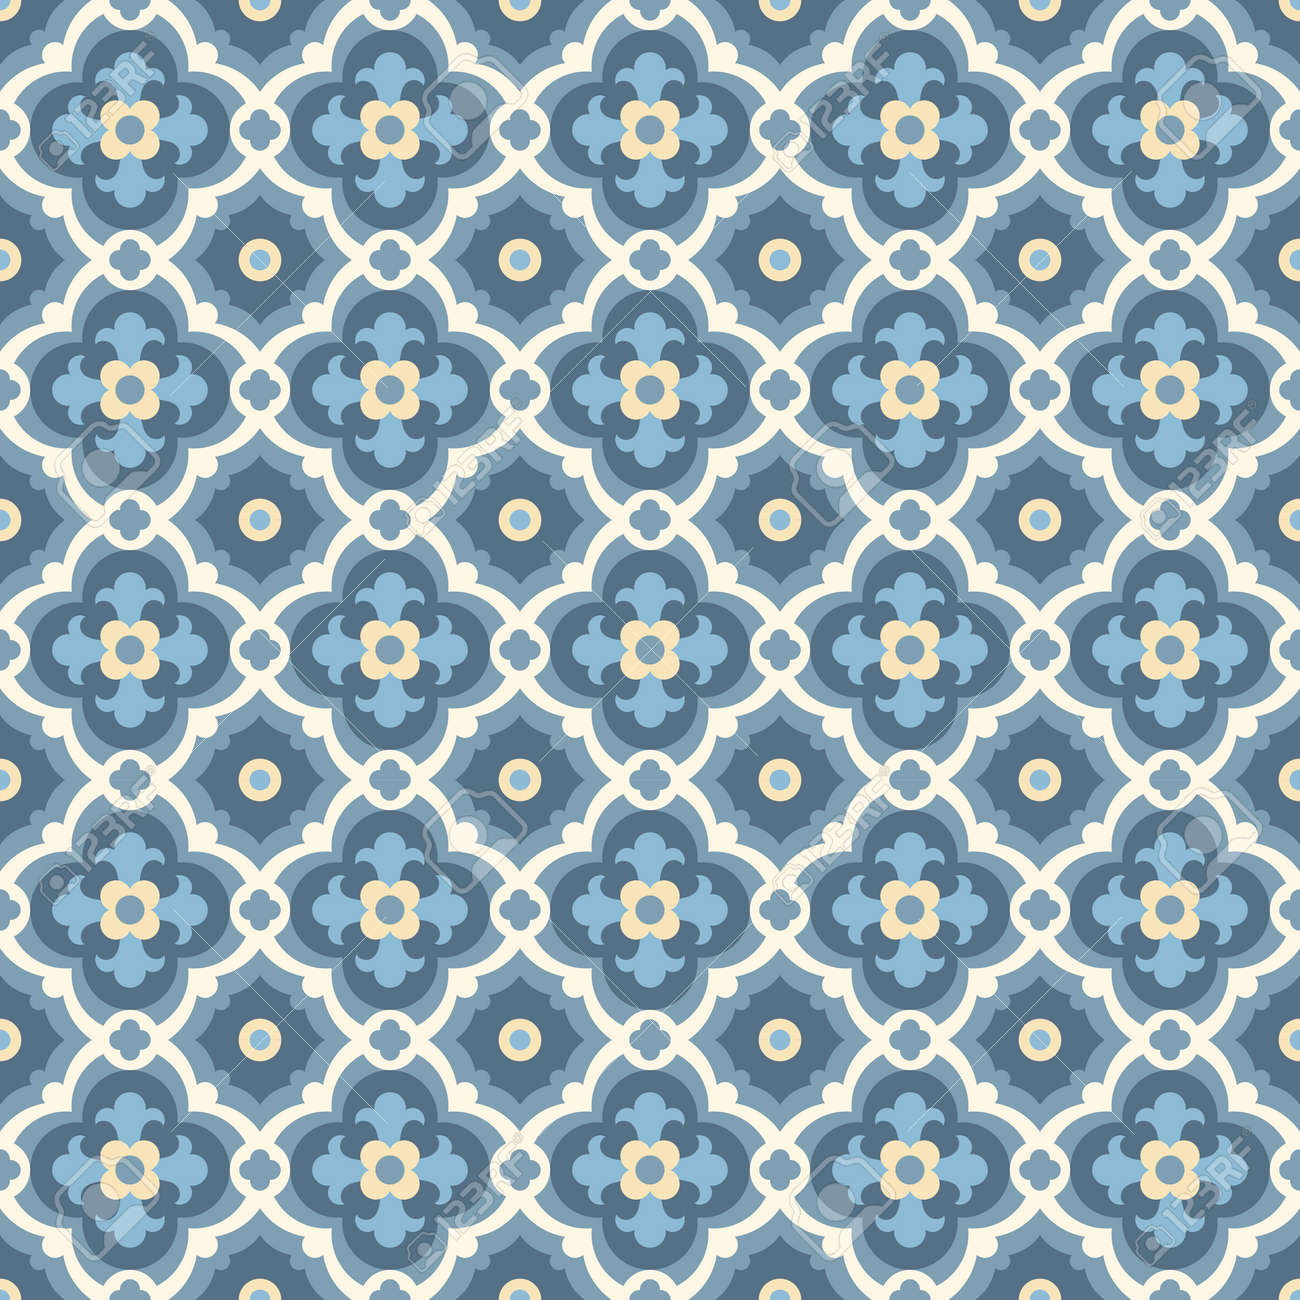 Floor Tiles - Seamless Vintage Pattern With Quatrefoils. Seamless ...